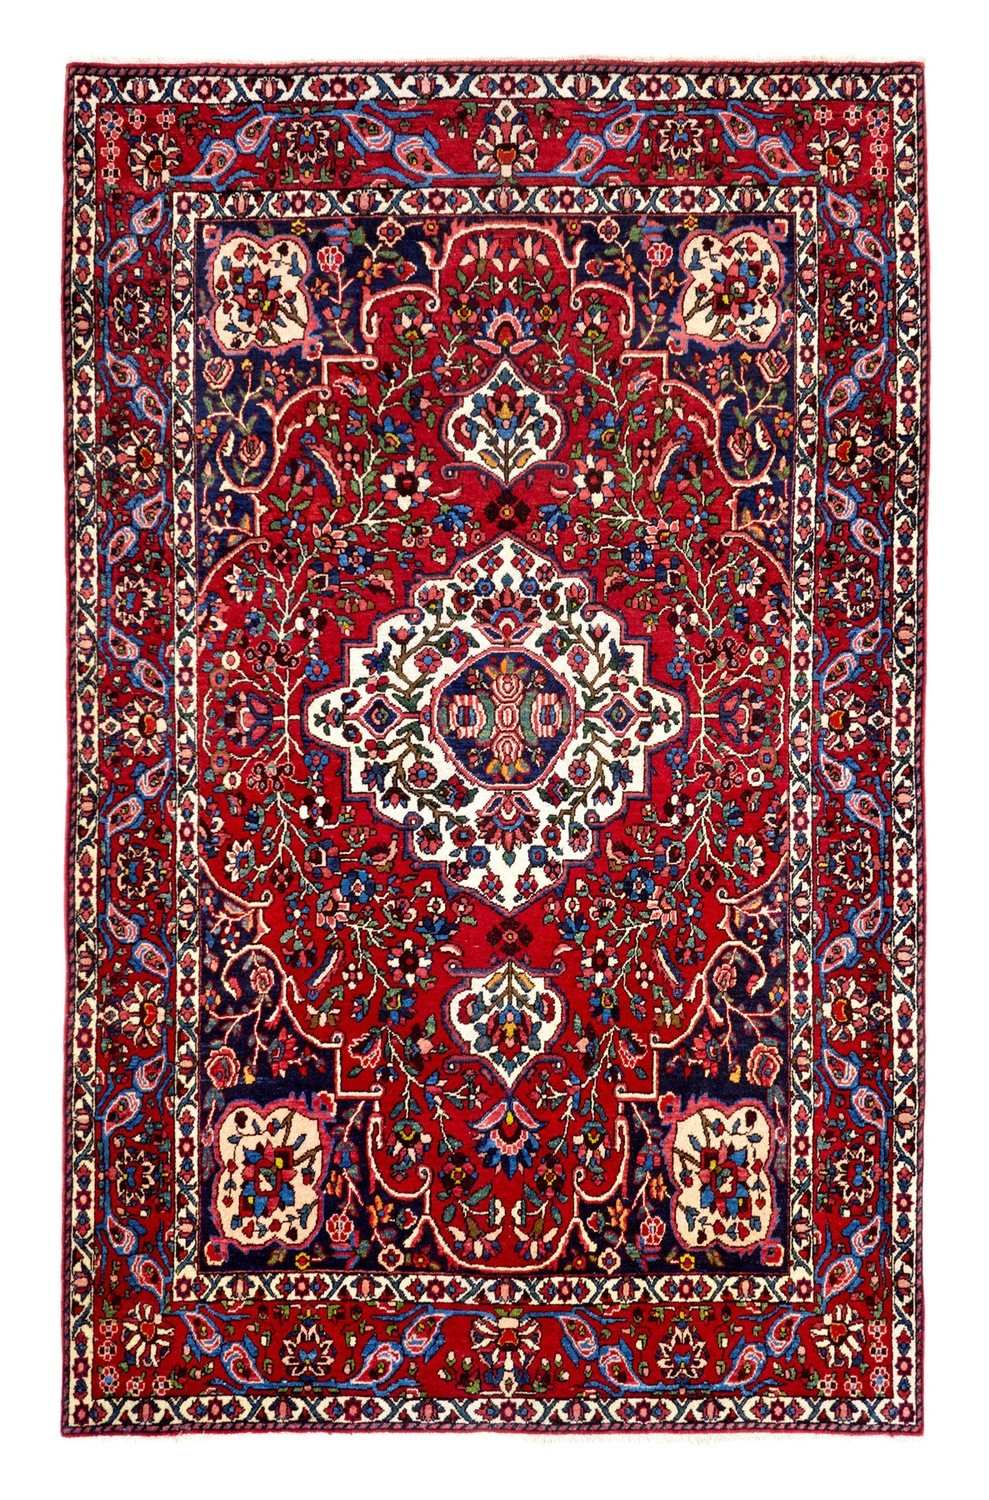 Old Persian Bakhtiari rug size 2.06 x 1.47 was £1,495